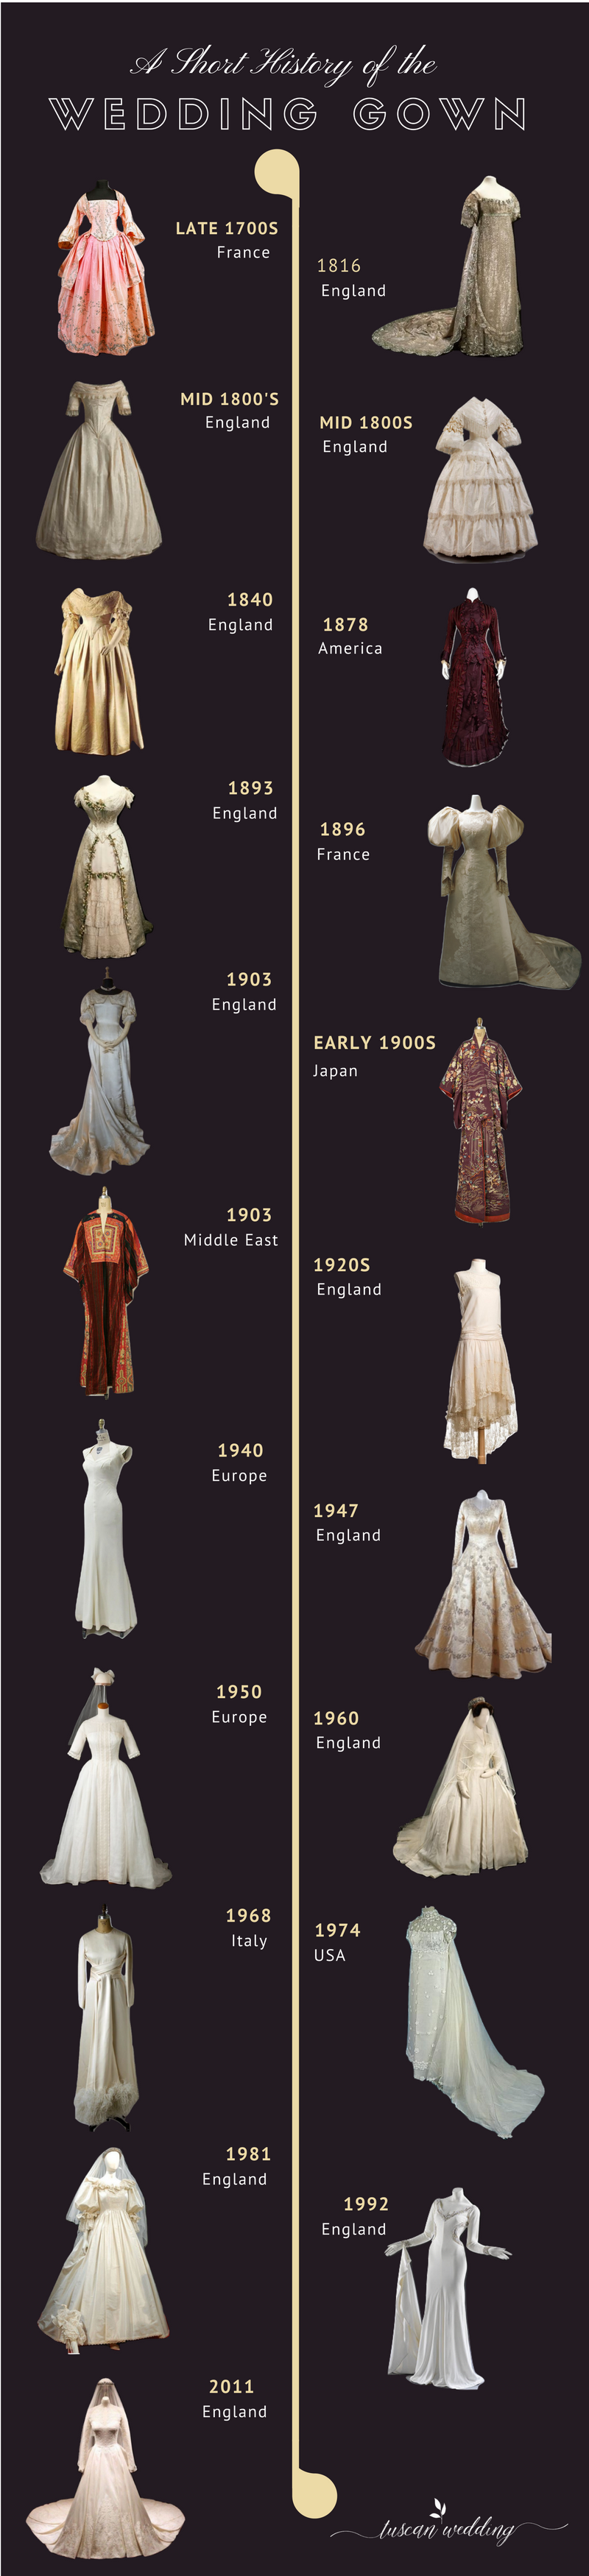 a_history_of_wedding_gowns_and_dresses